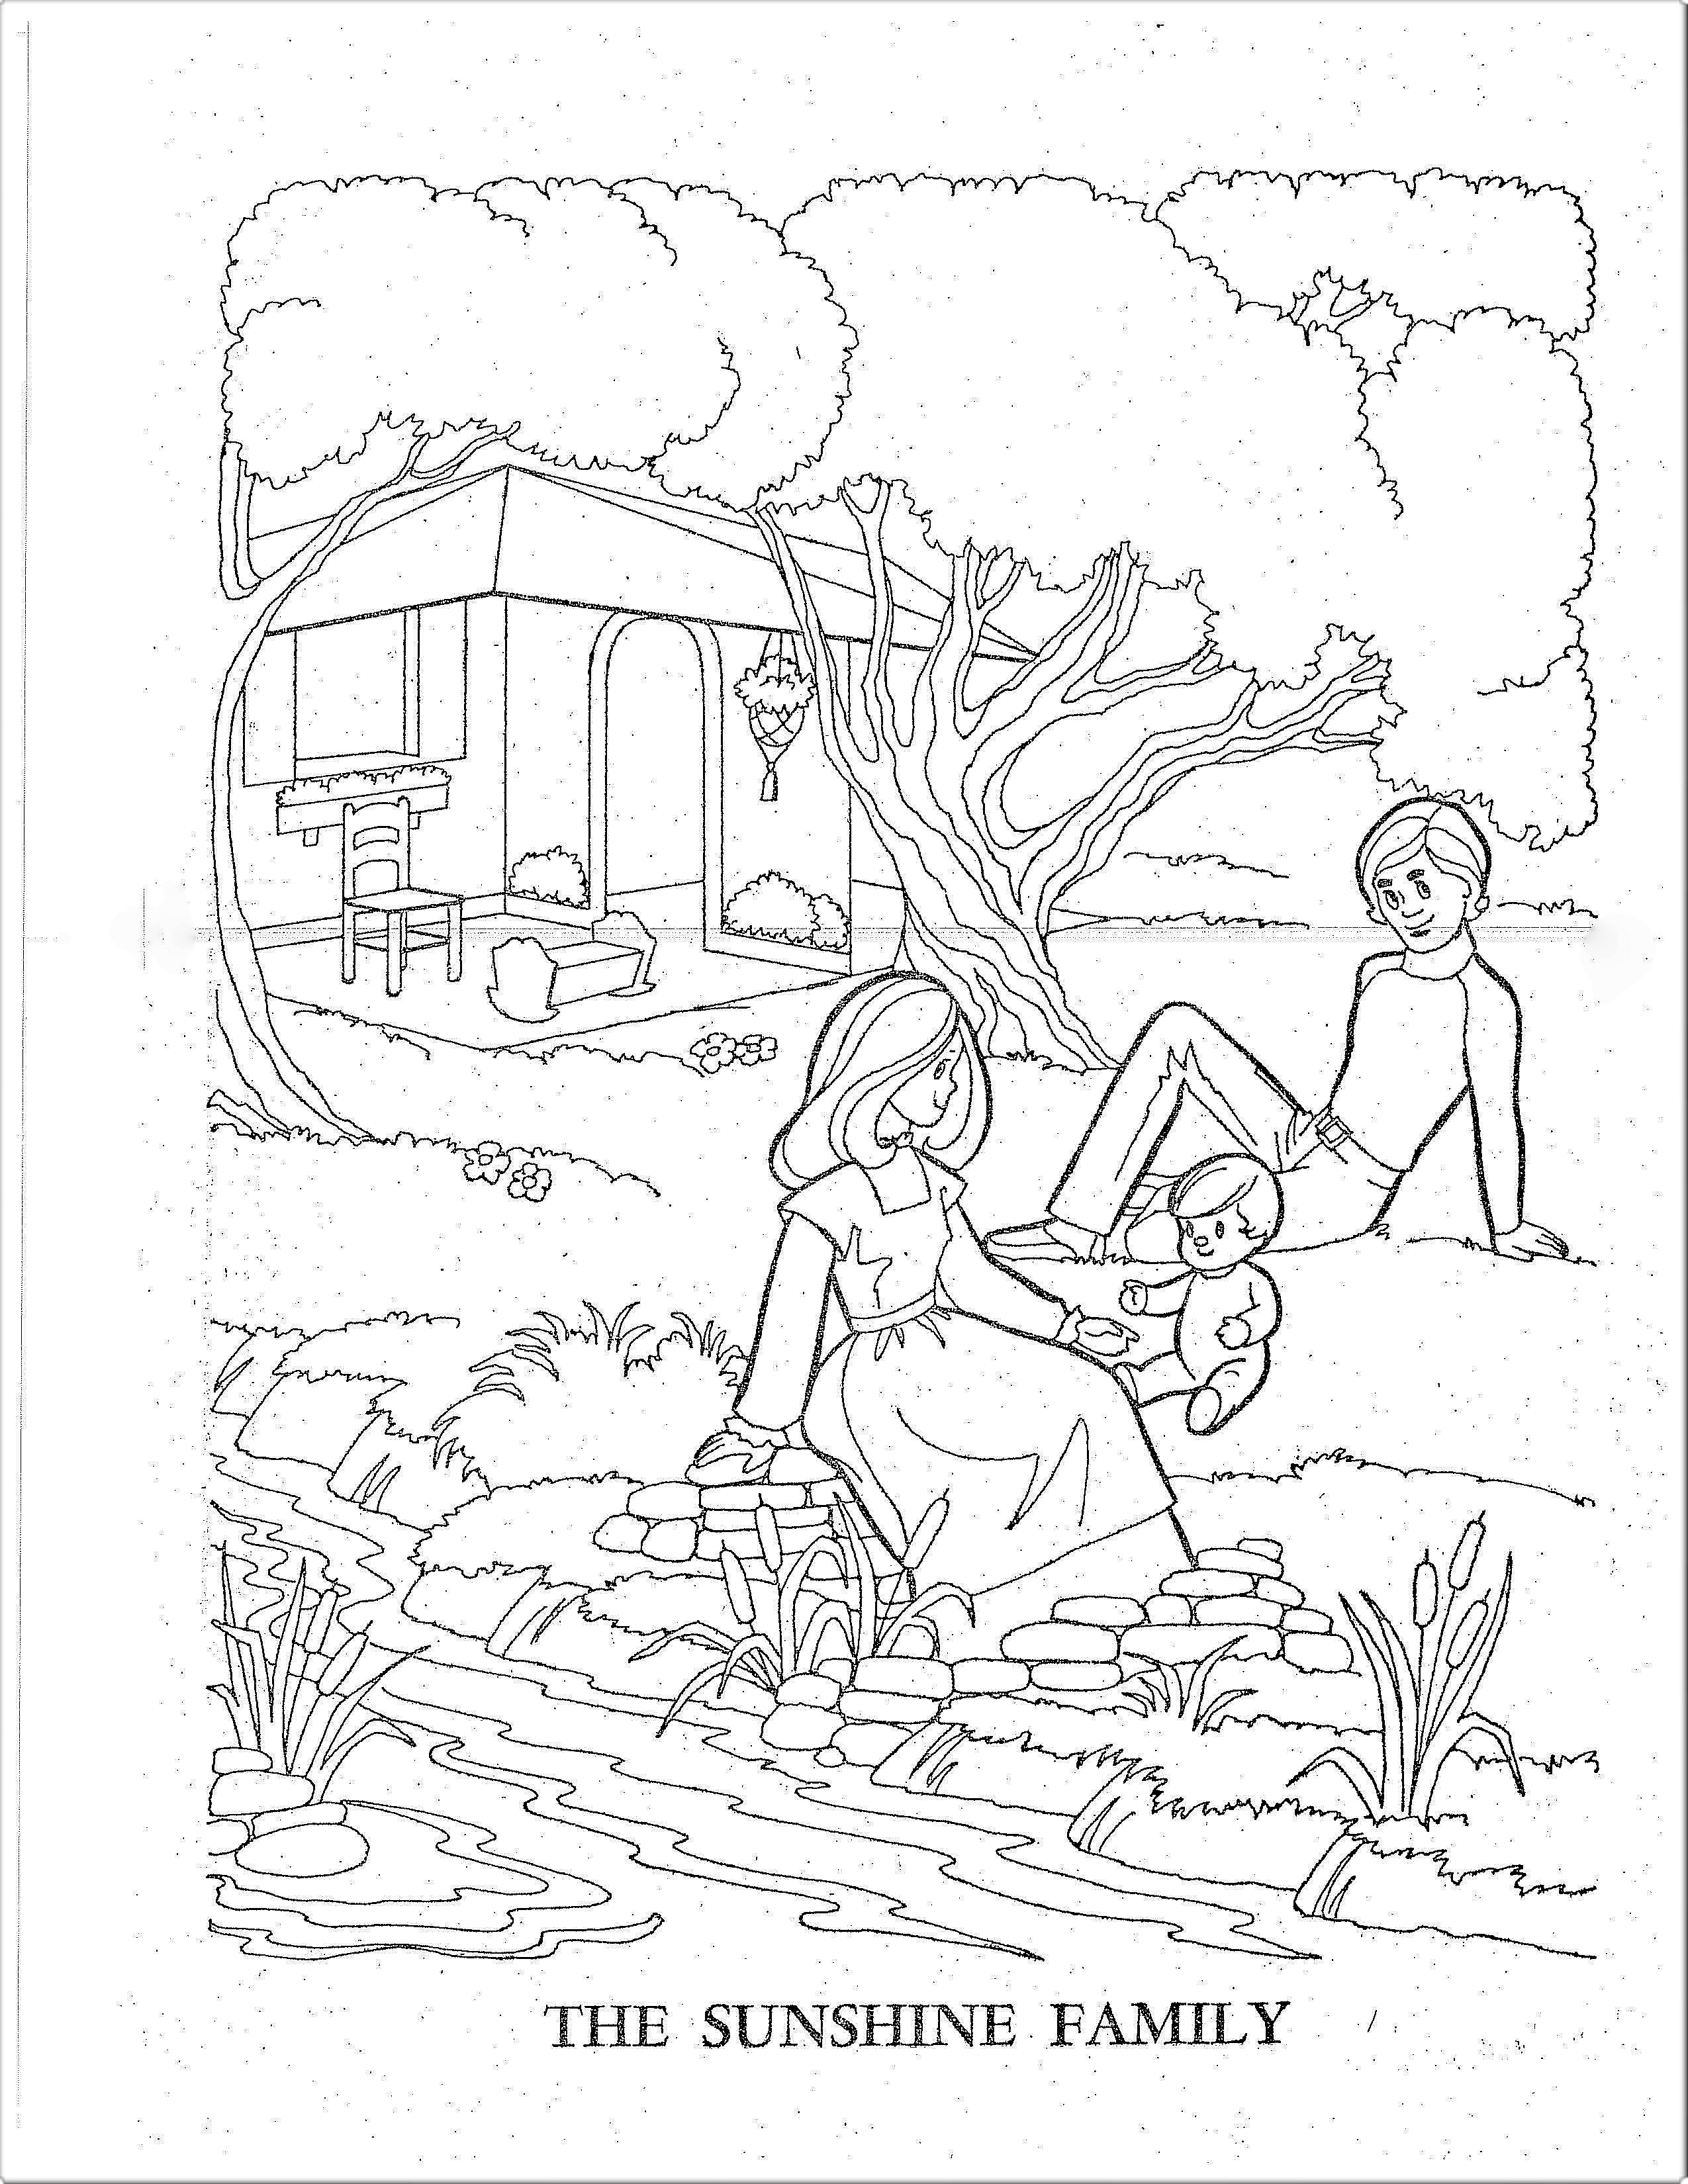 70s Sunshine Family Coloring Pages - Picnic in the Yard | Cute ...